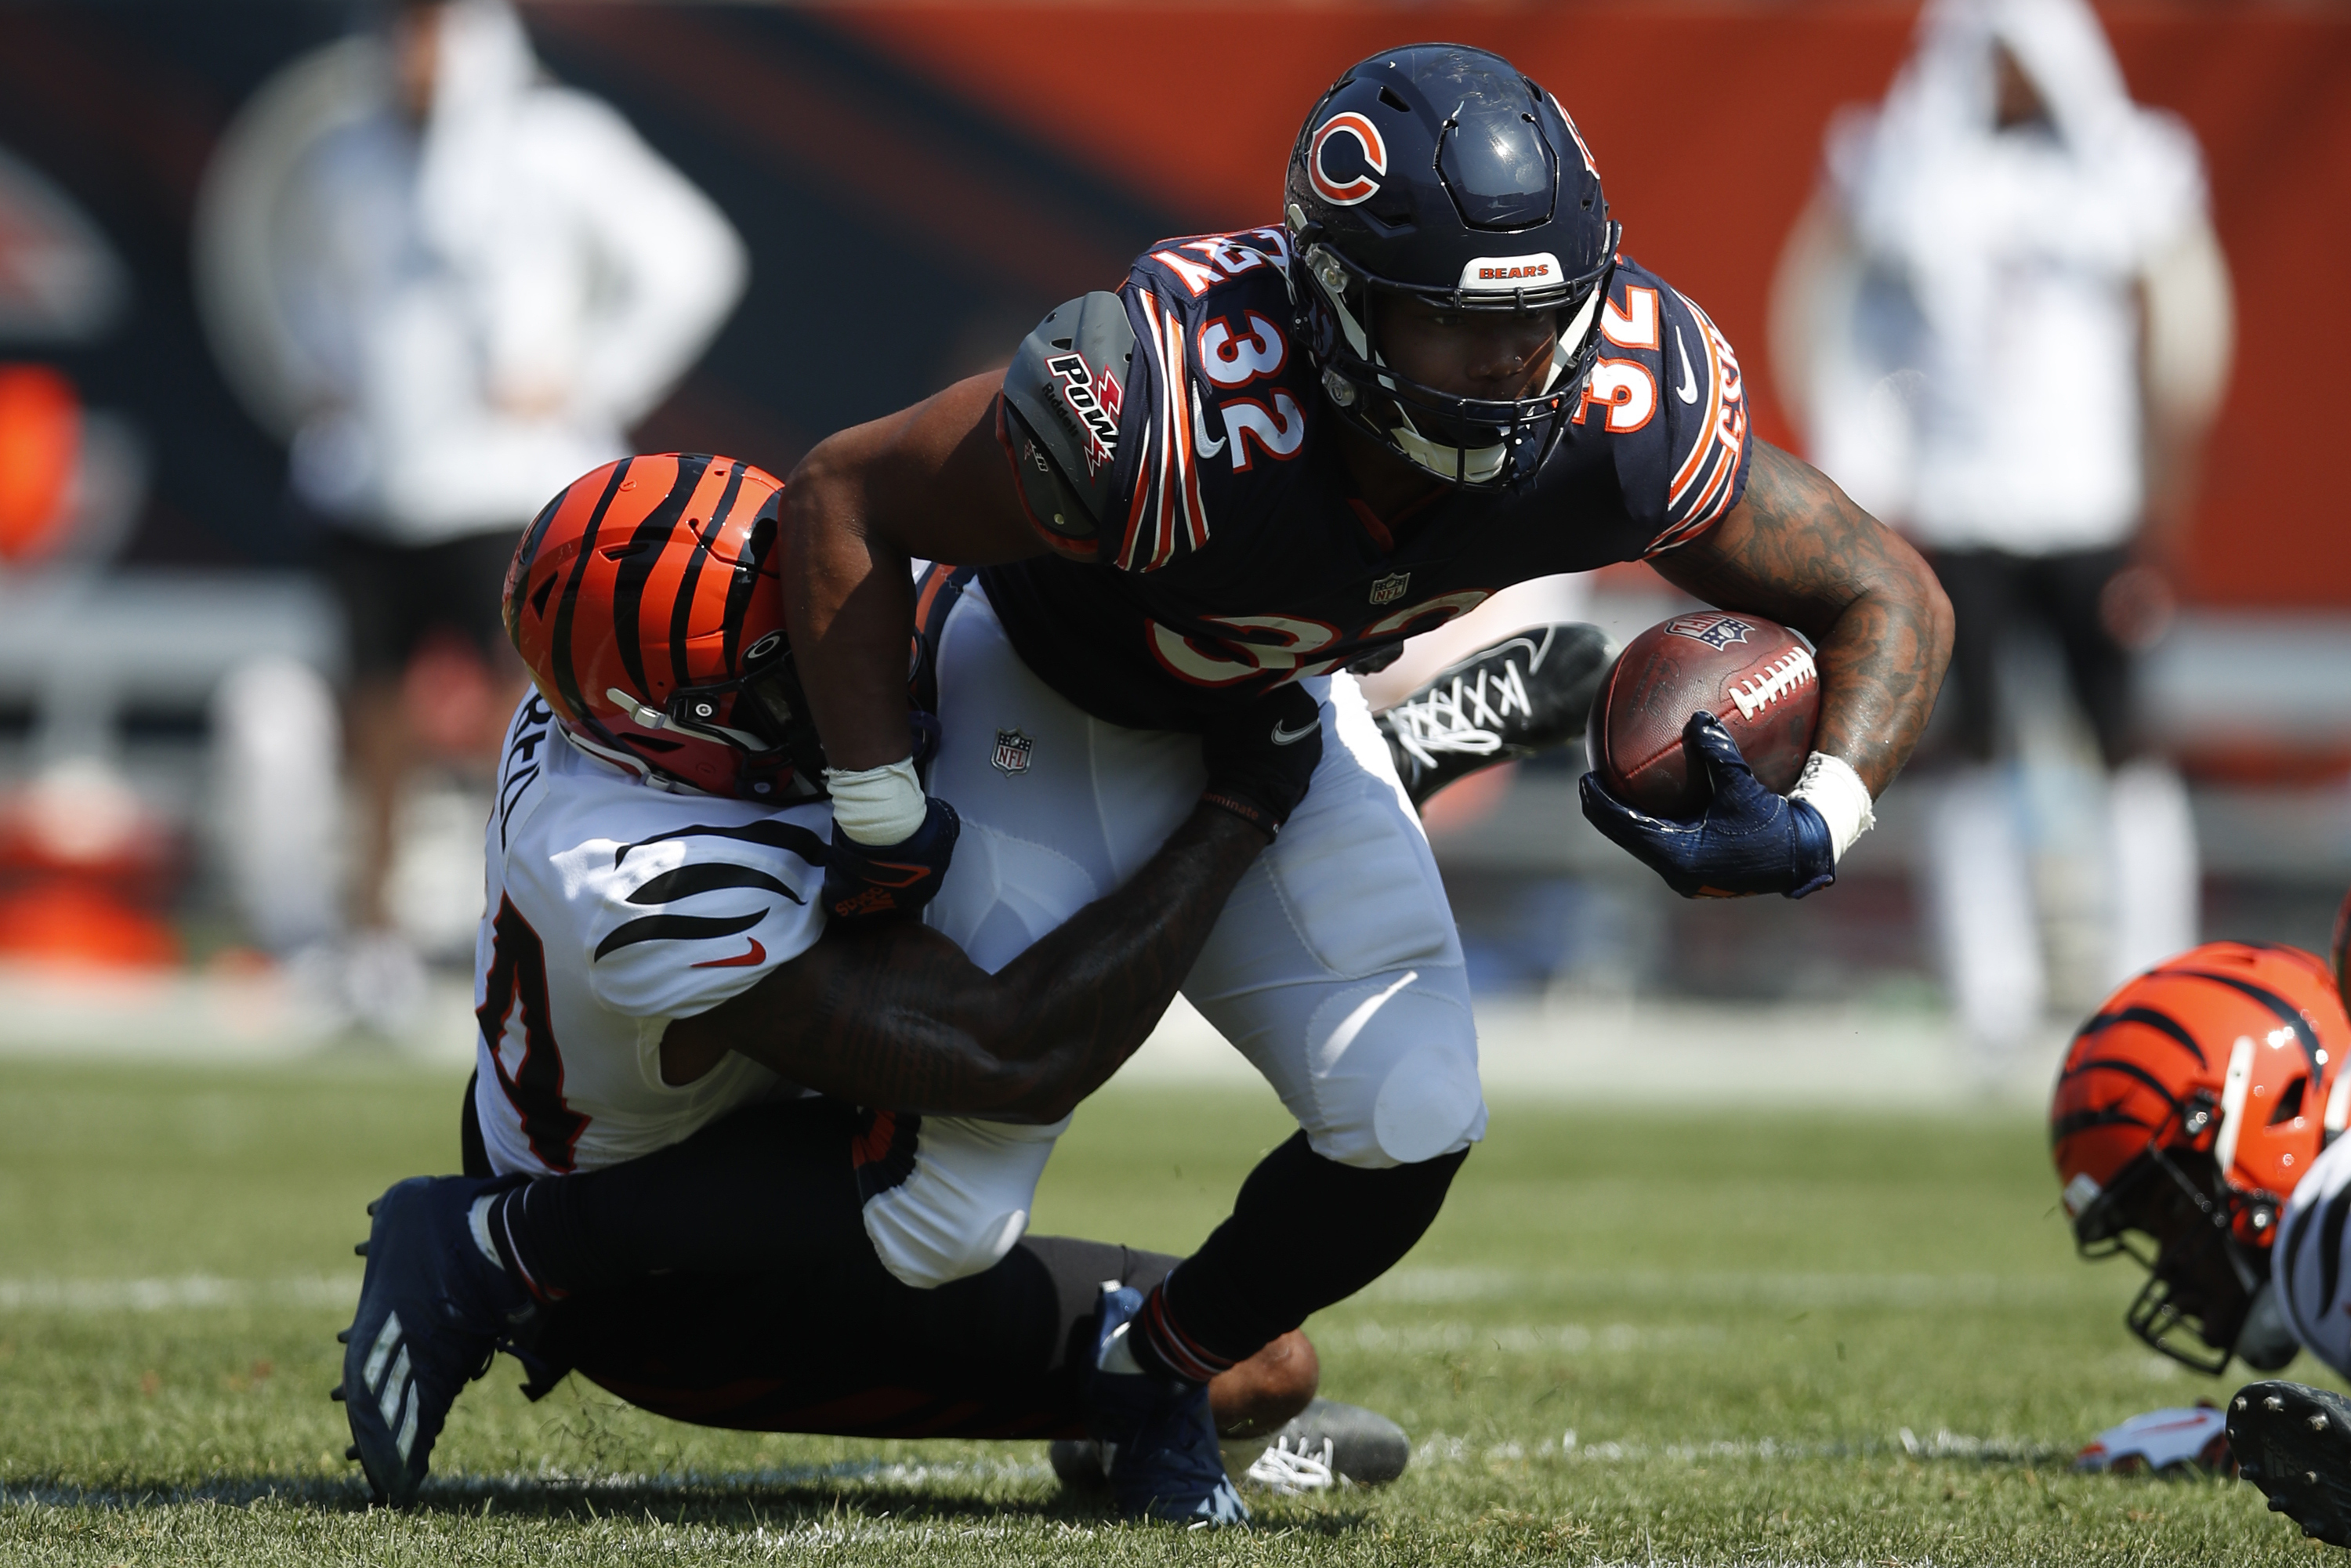 Bears running back David Montgomery (32) has rushed for 169 yards (4.7 yards per carry) and one touchdown this season.